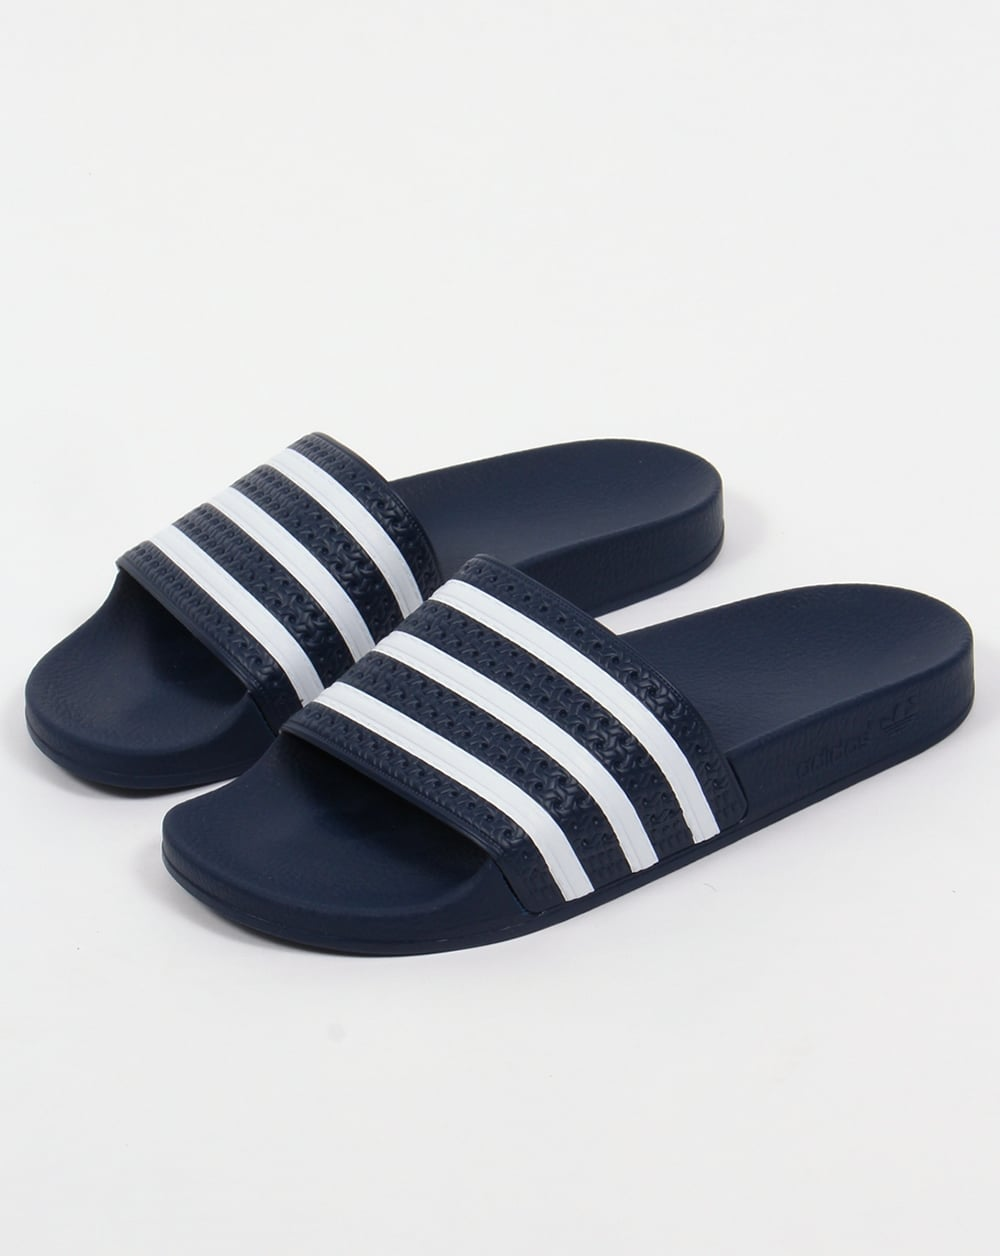 88308dae57d2 Adidas Adilette Sliders Navy White